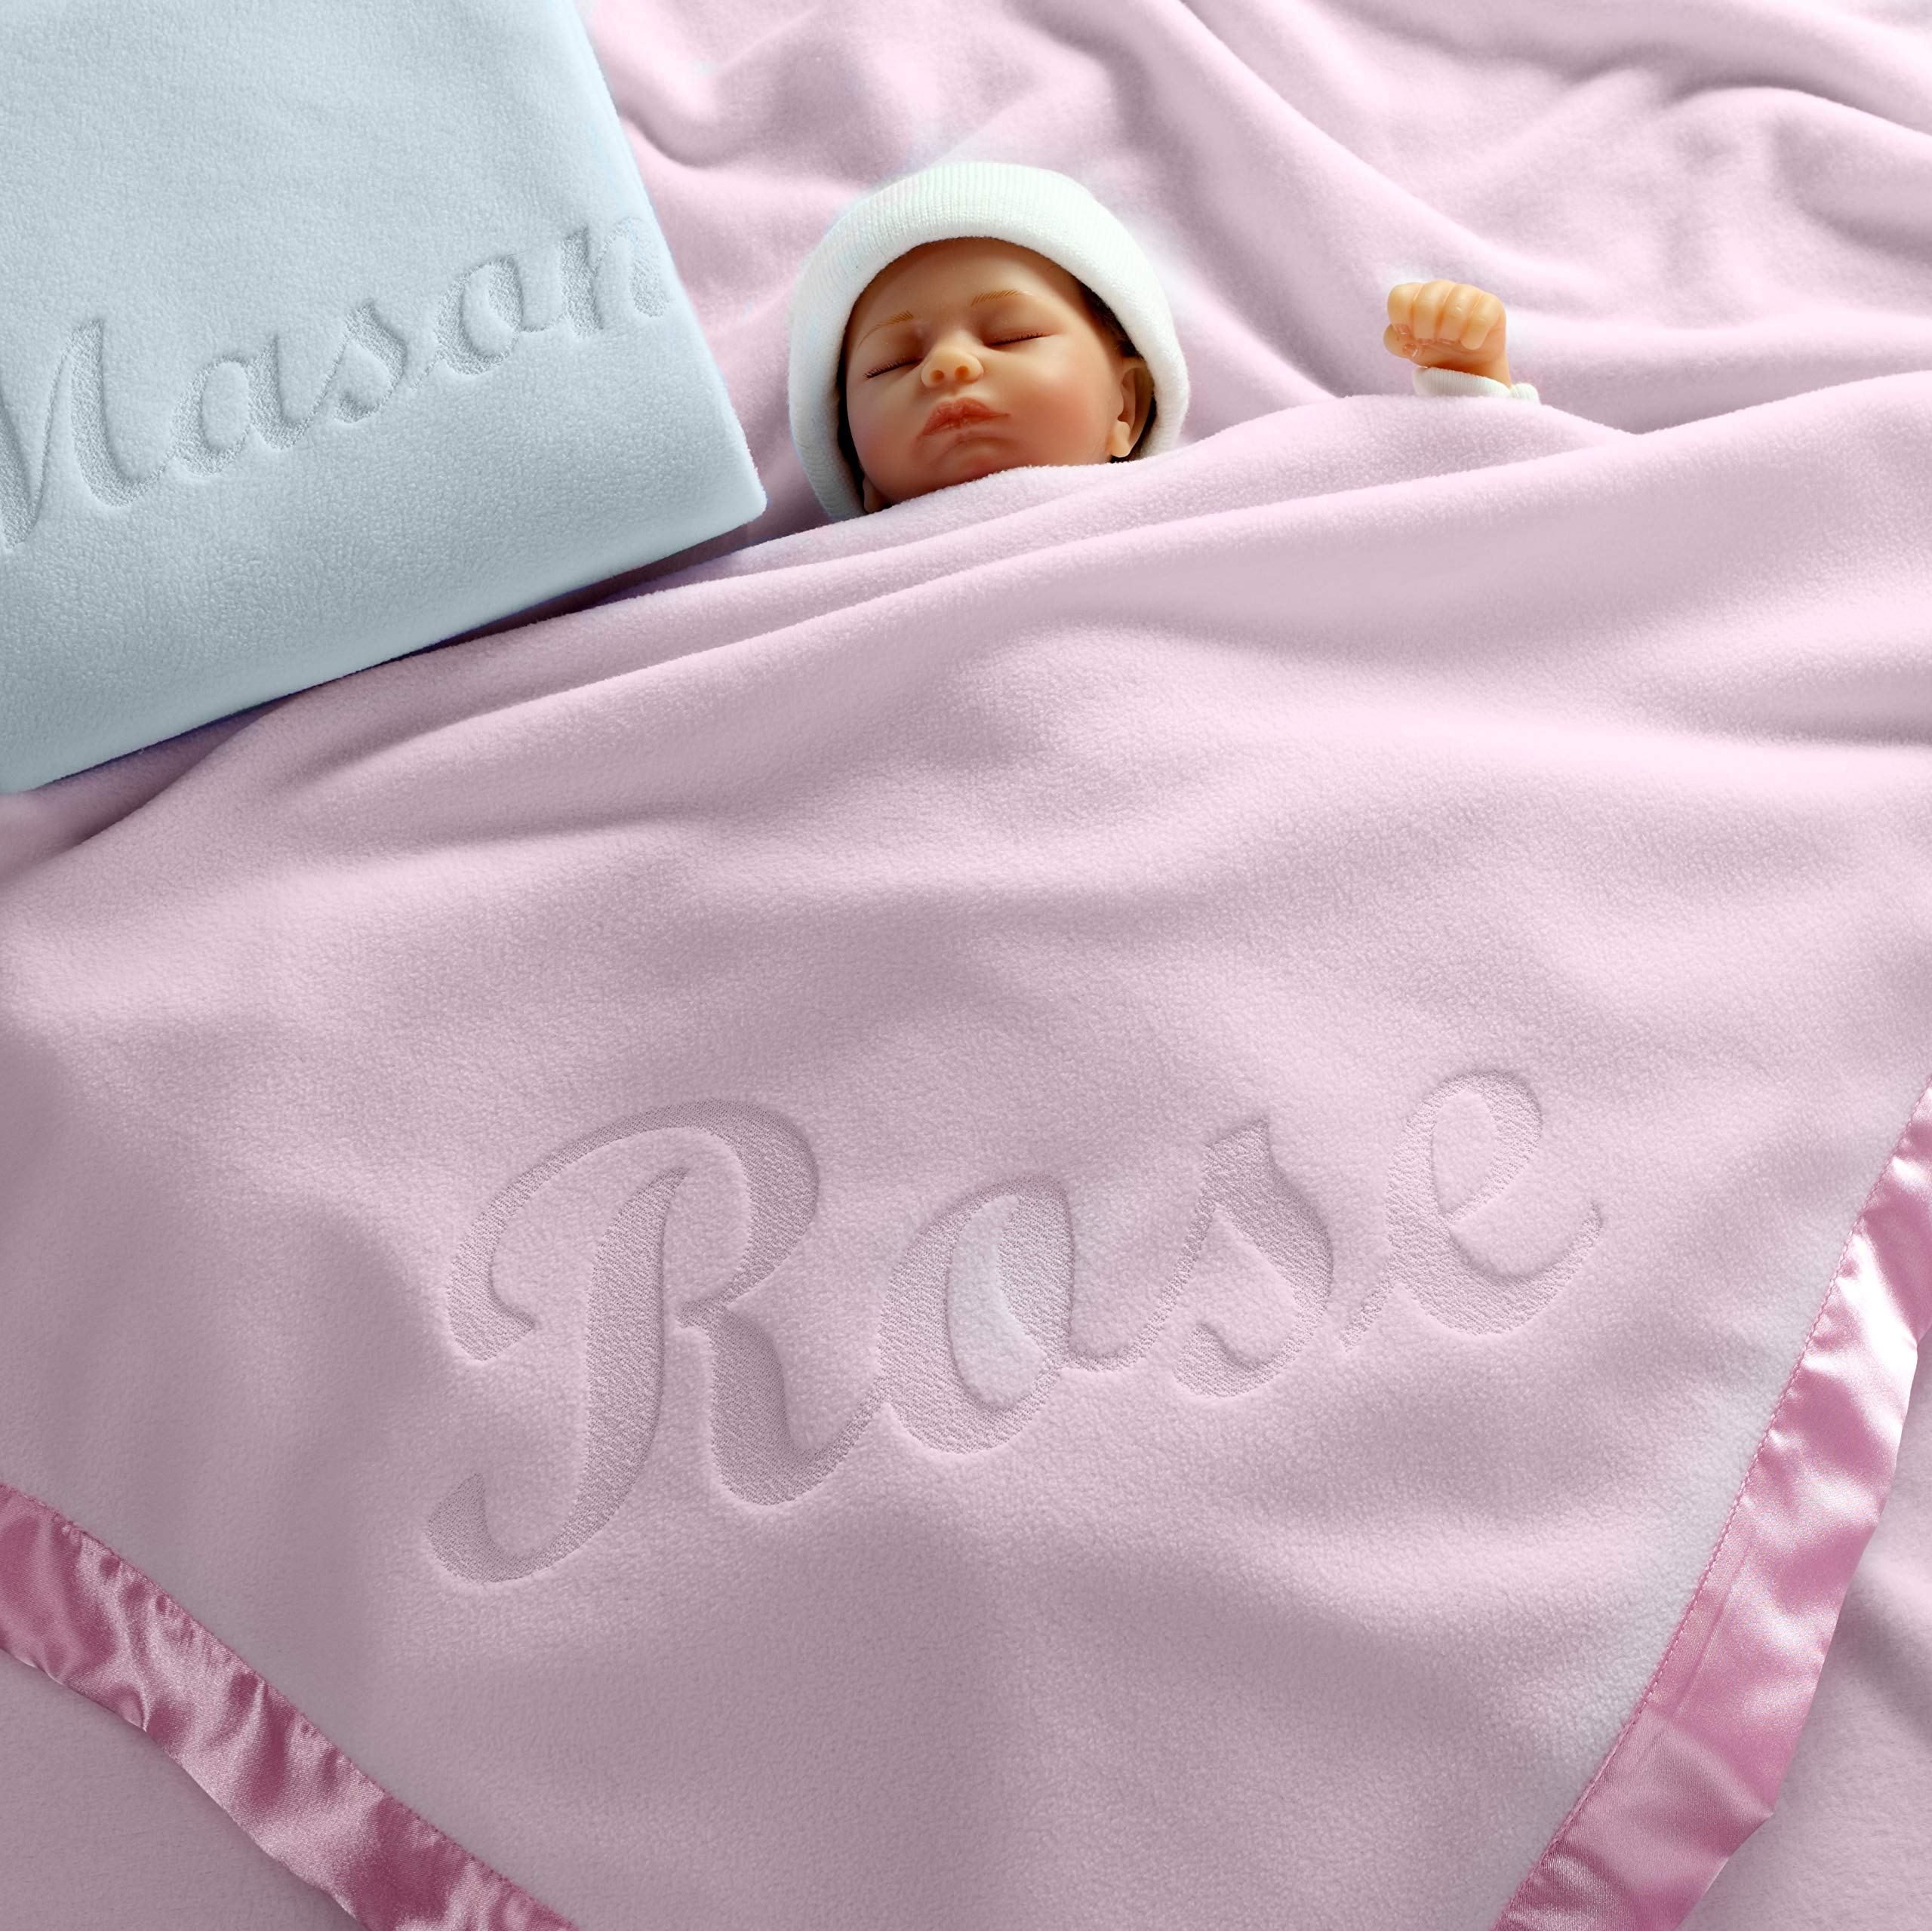 Large Personalized Baby Blanket (Pink) - 36x36 Inch, Satin Trim, Fleece by Custom Catch